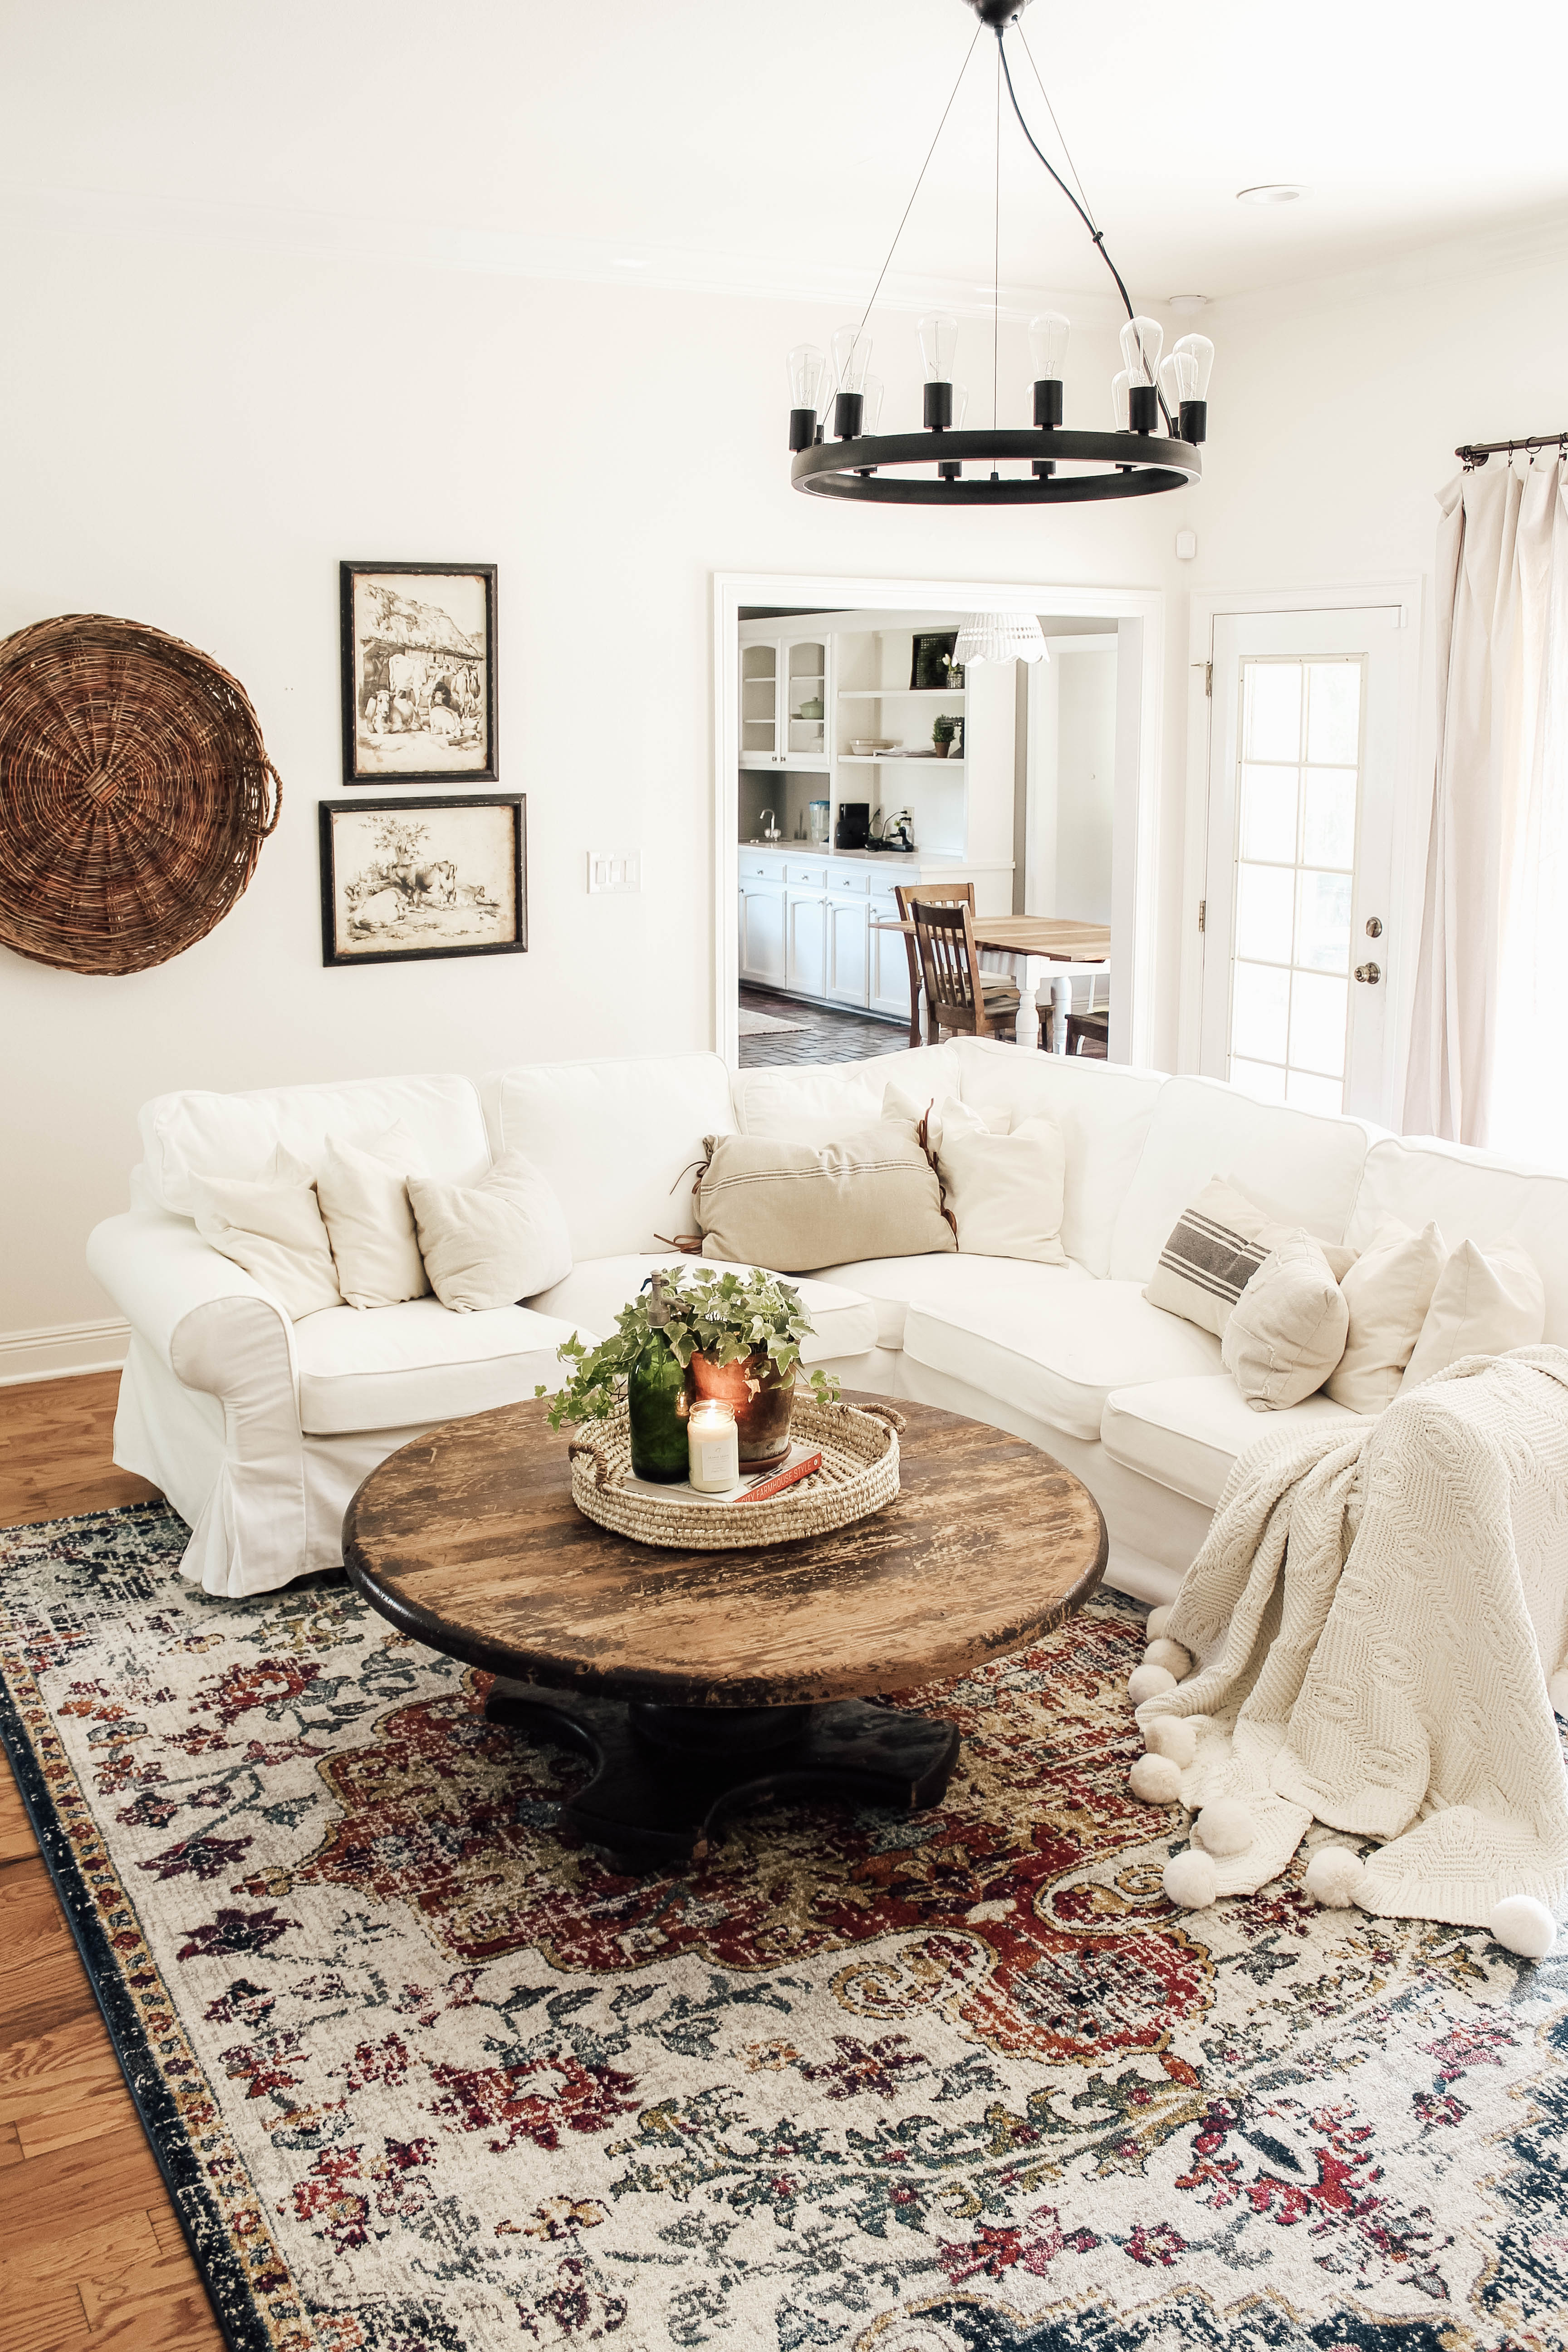 A new living room rug is an easy and inexpensive way to completely transform the look of your space!